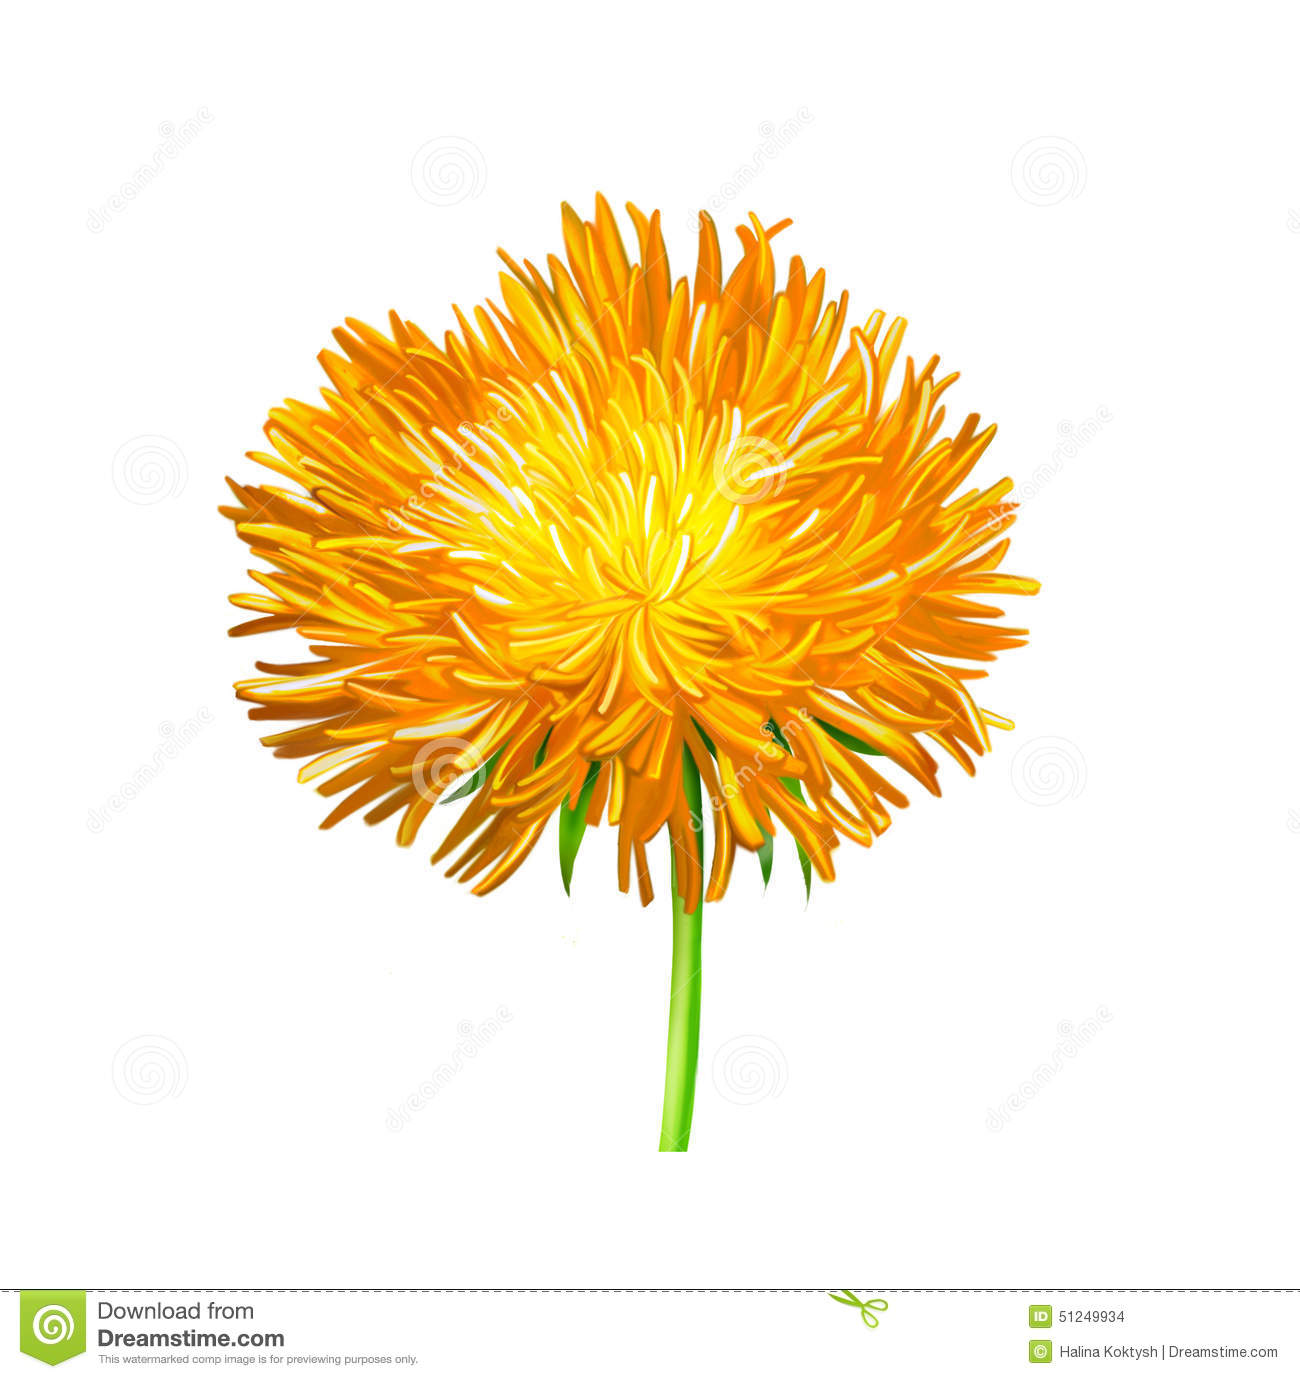 Yellow thistle flower aster illustration stock illustration download comp mightylinksfo